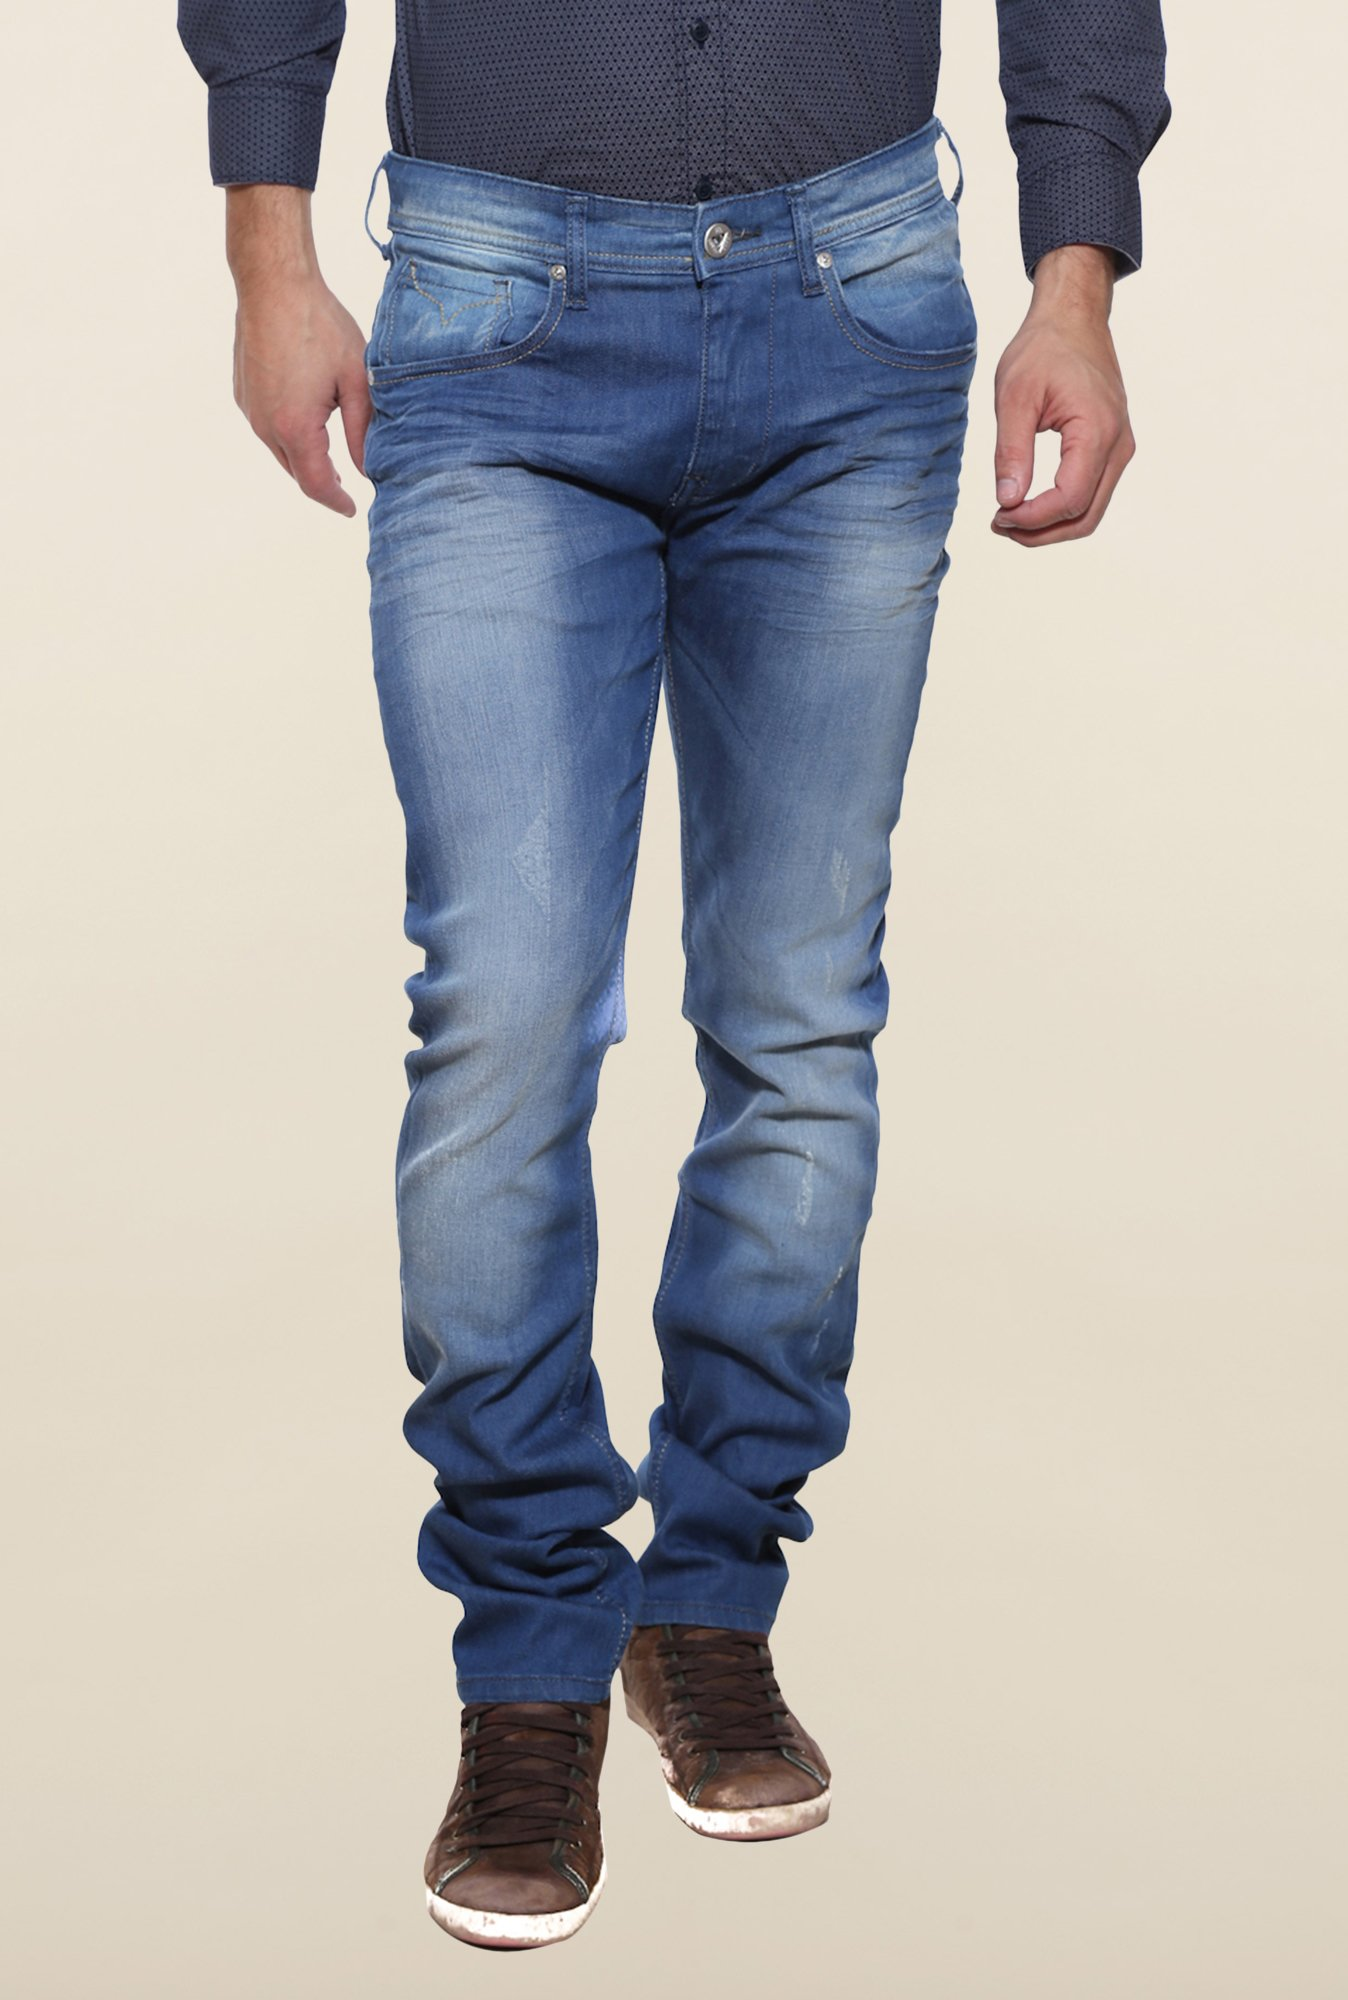 Pepe Jeans Blue Lightly Washed Distressed Jeans